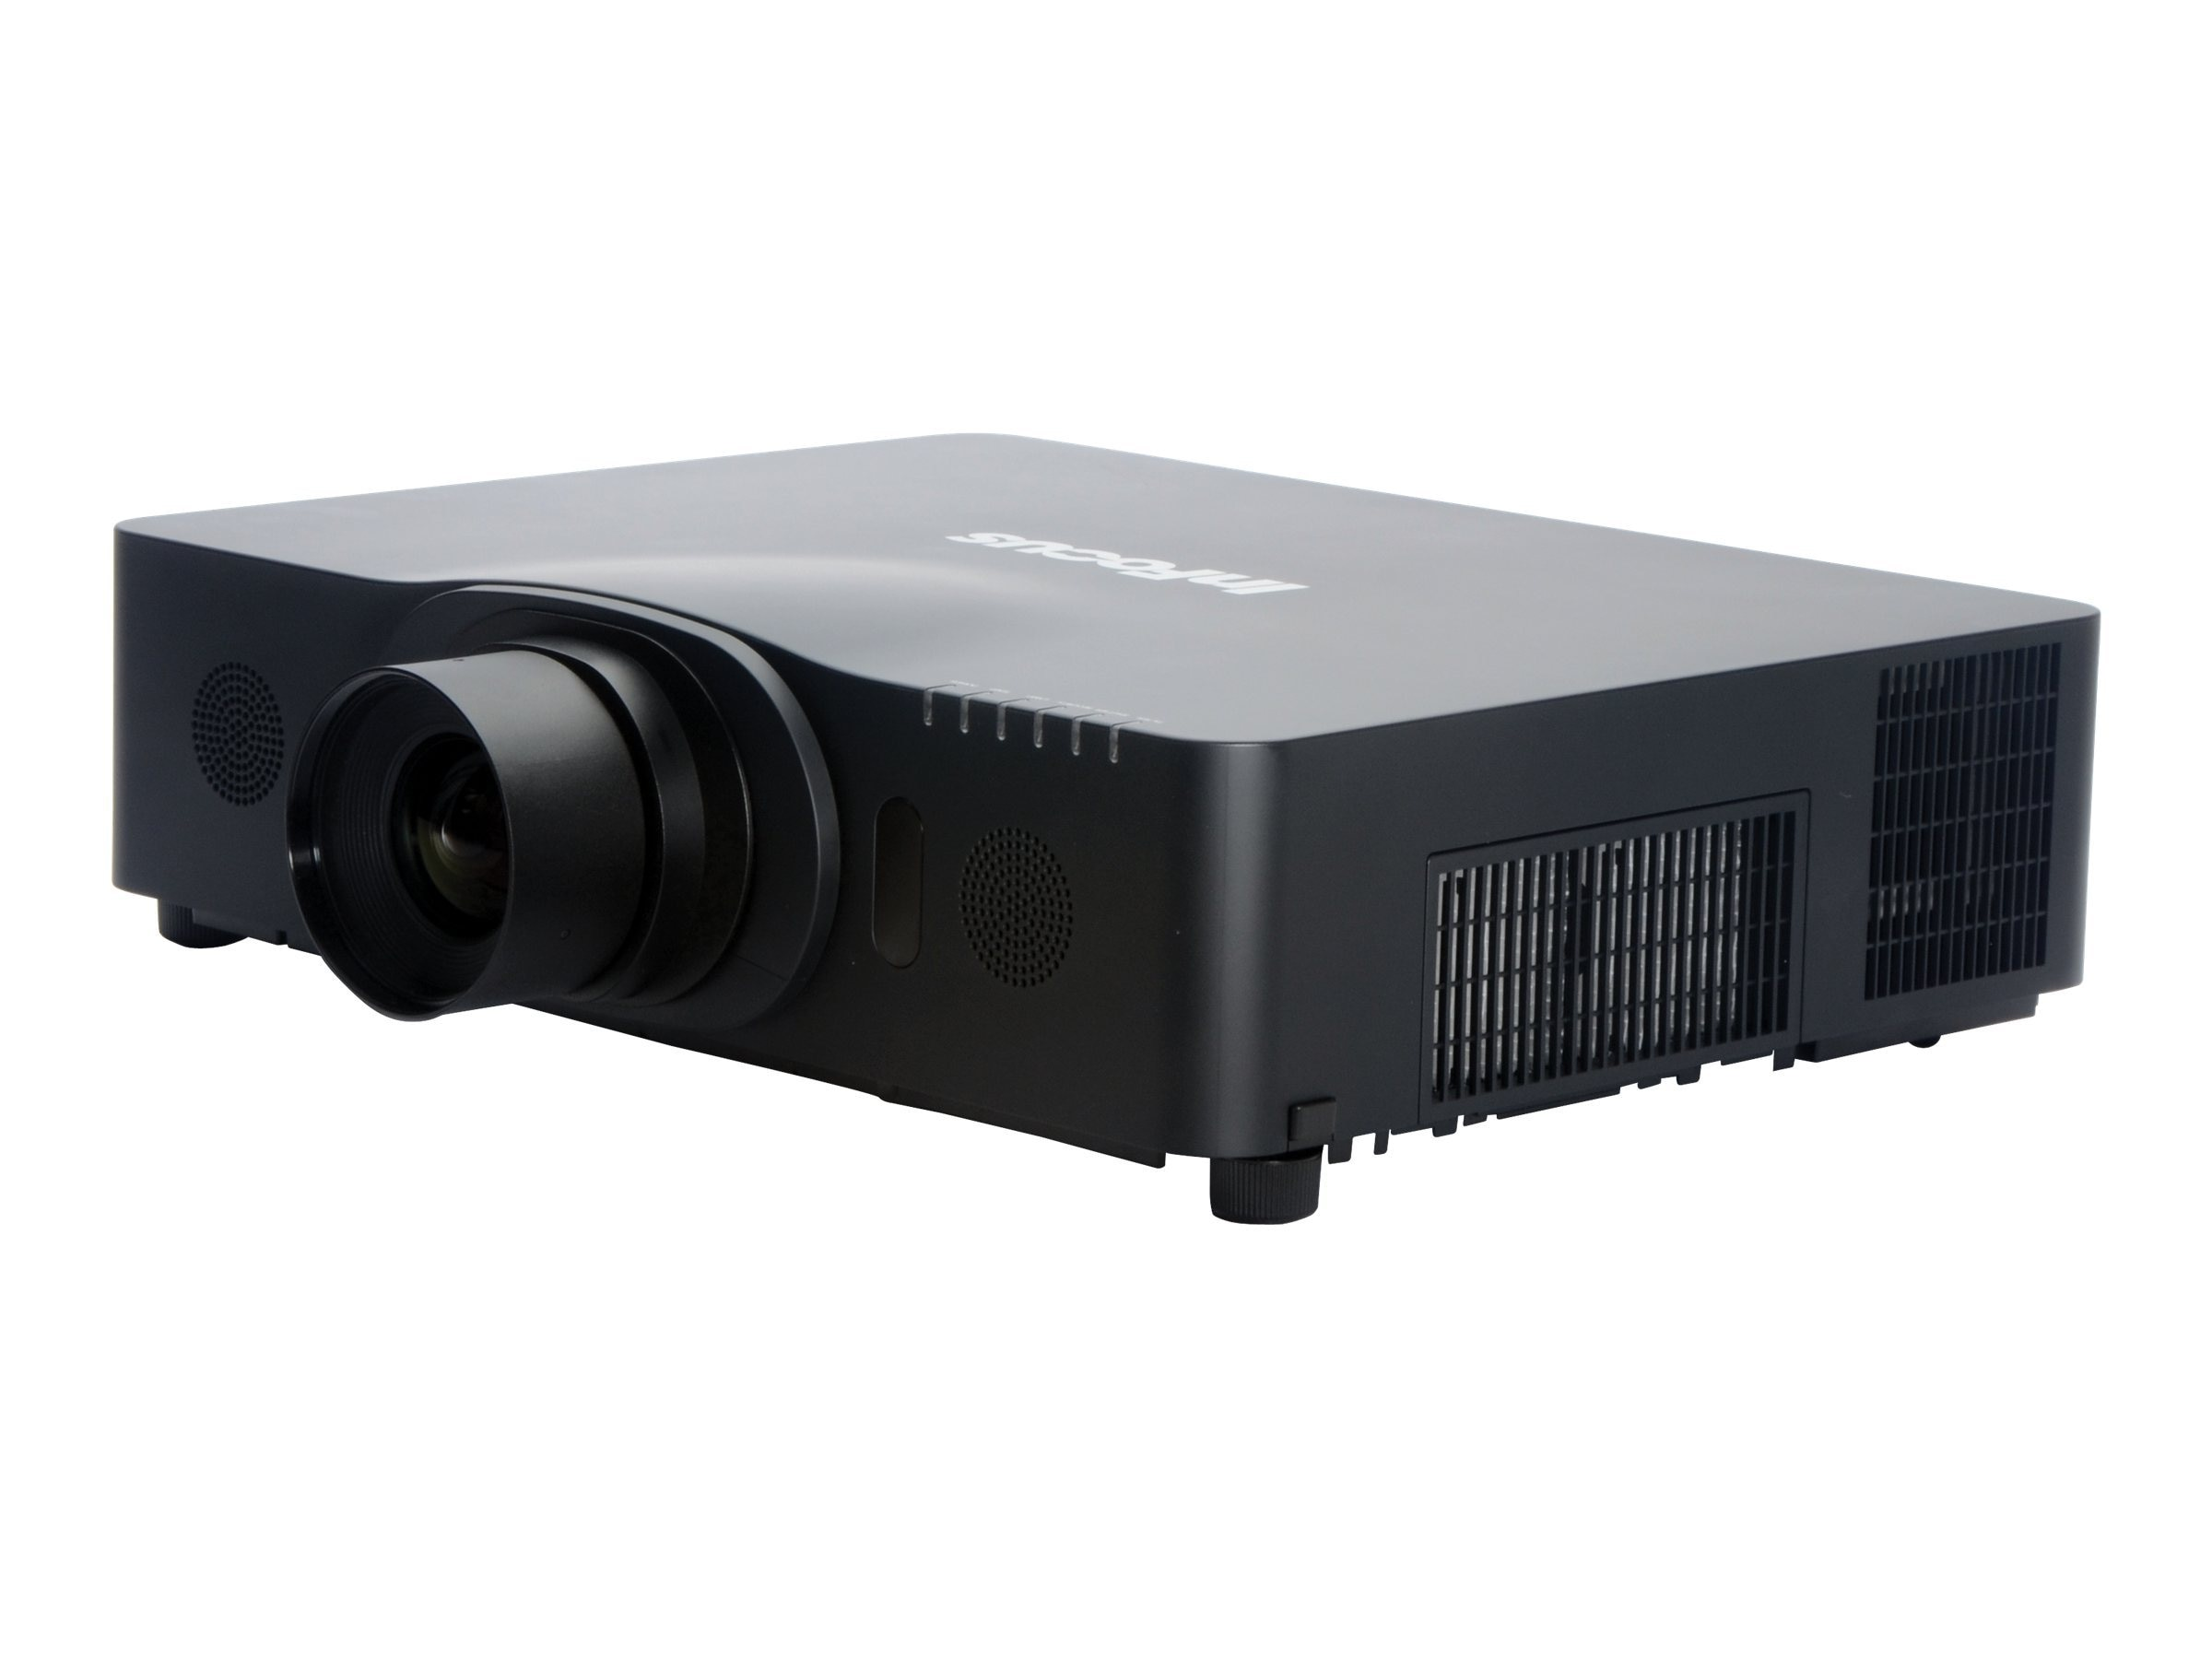 InFocus IN5145 WUXGA LCD Projector, 5000 Lumens, Black, IN5145, 14005232, Projectors